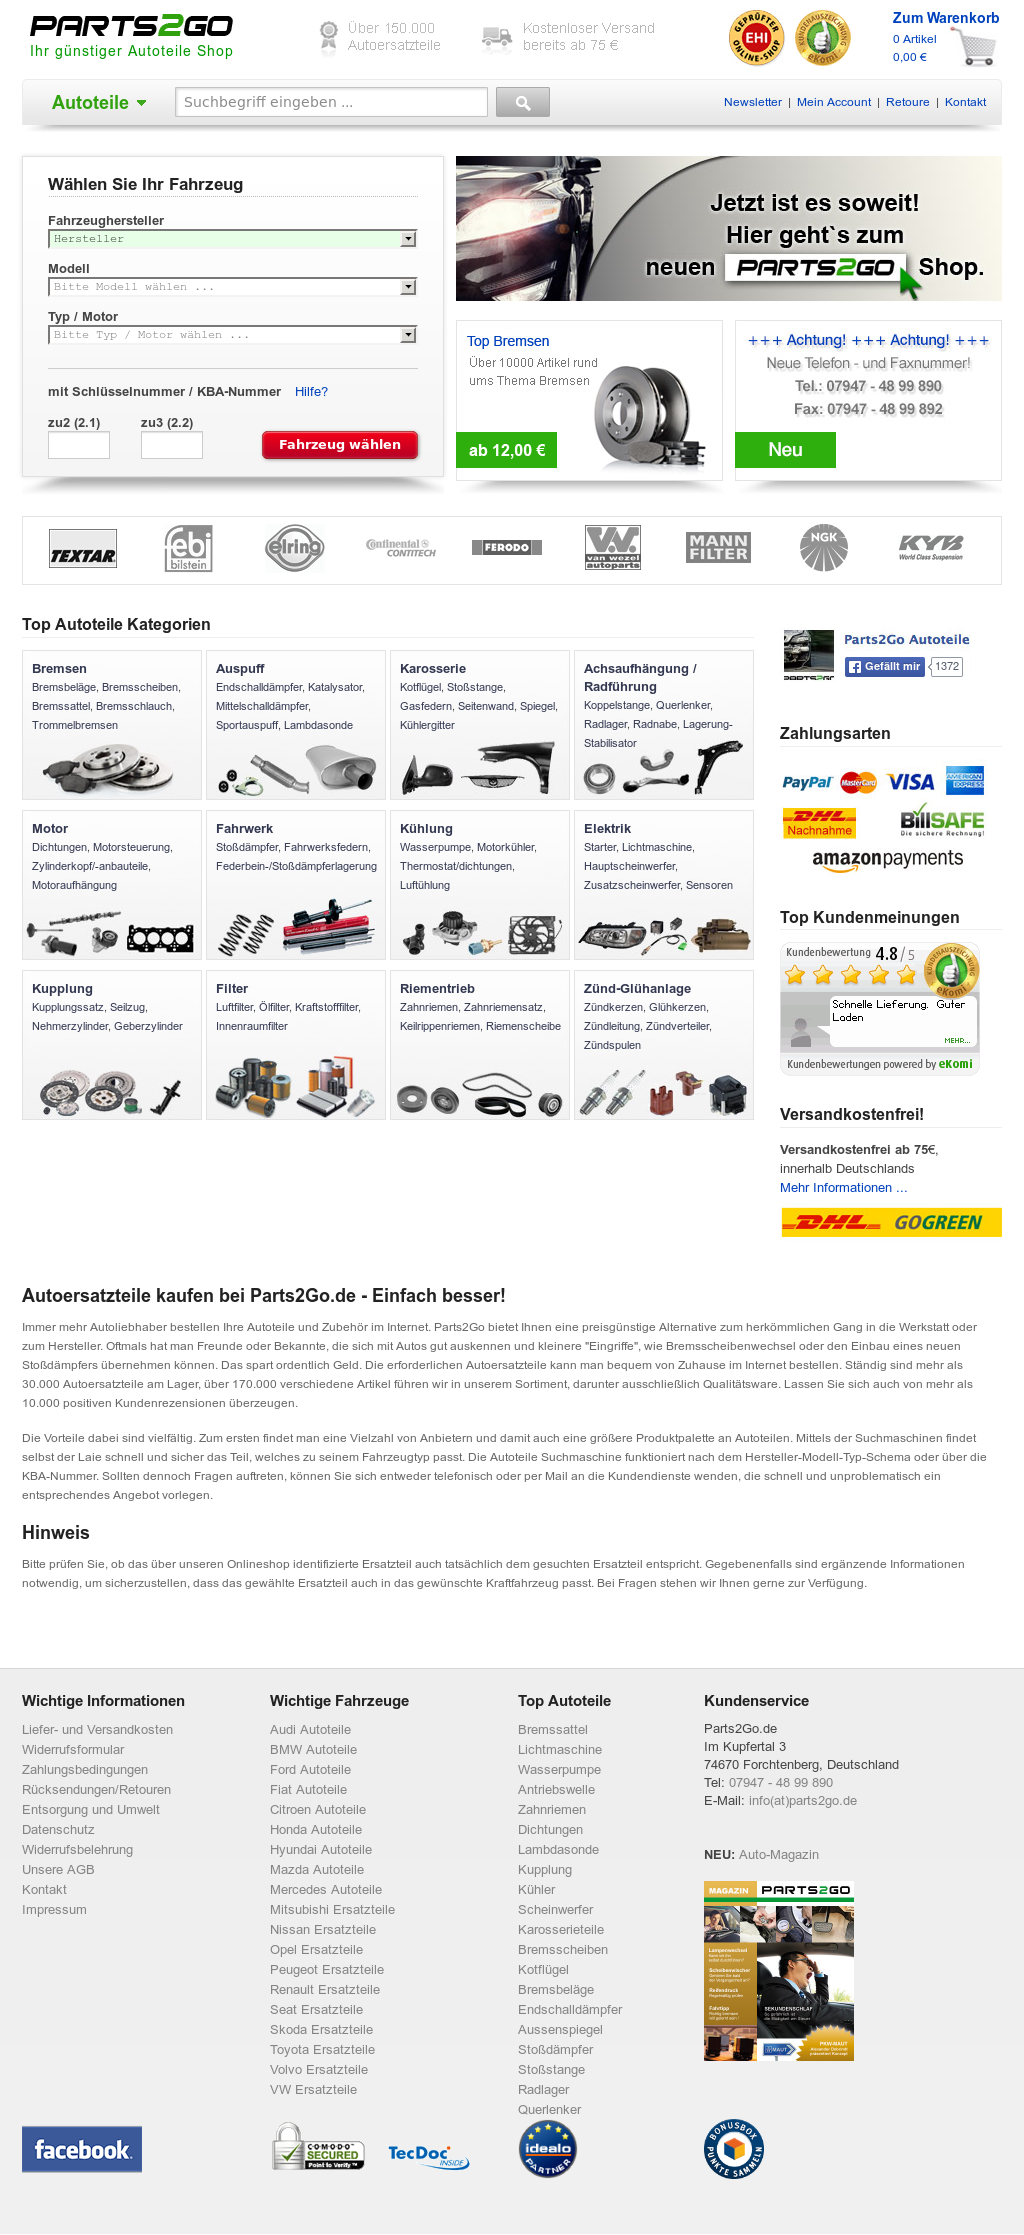 Parts2go Autoteile Competitors, Revenue and Employees - Owler ...